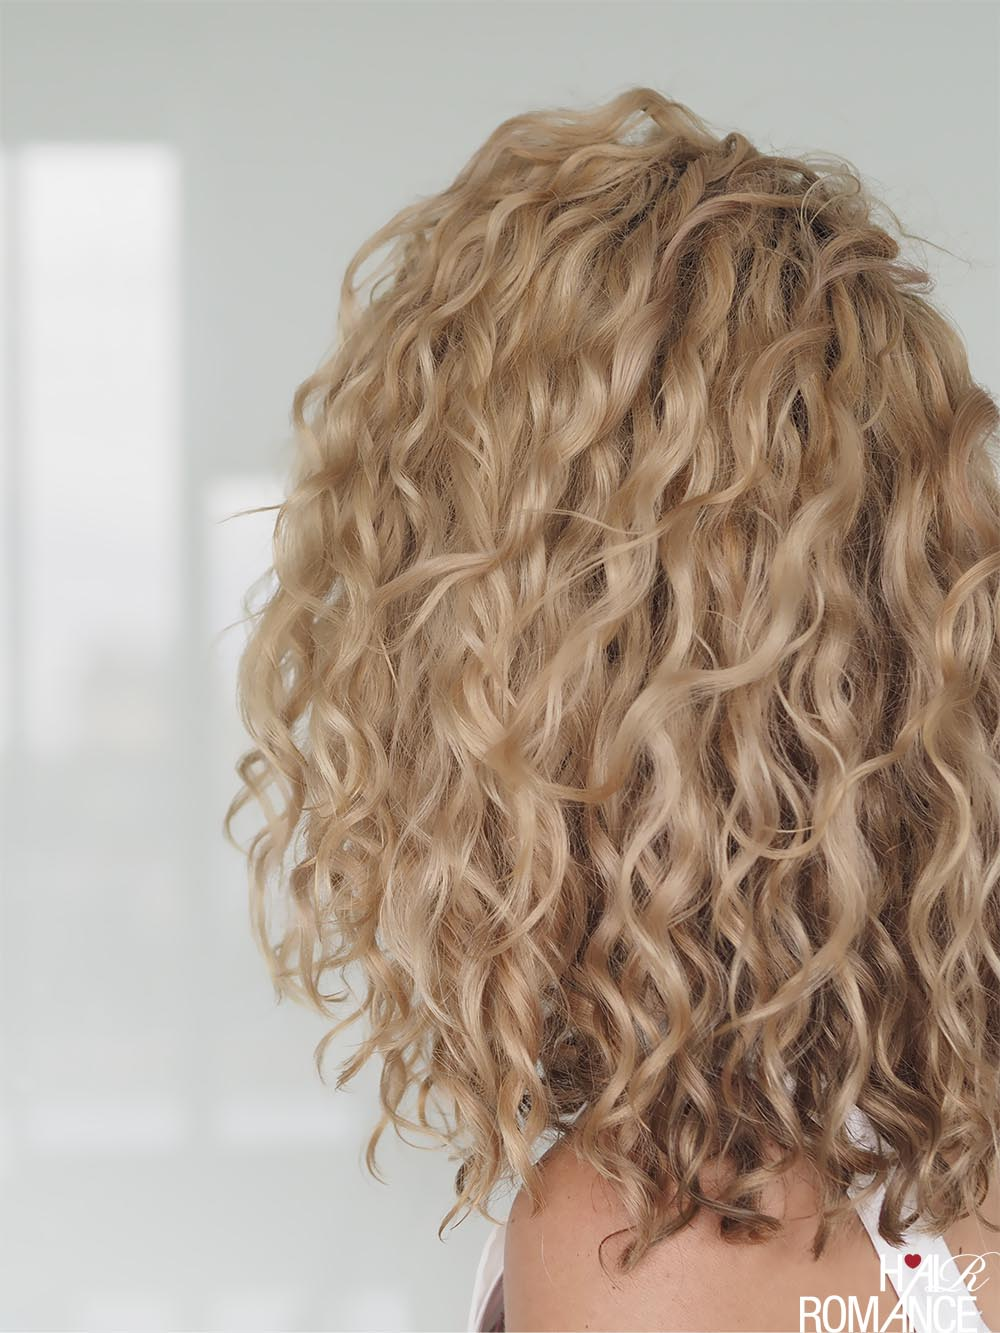 The best haircuts for curly hair - Hair Romance